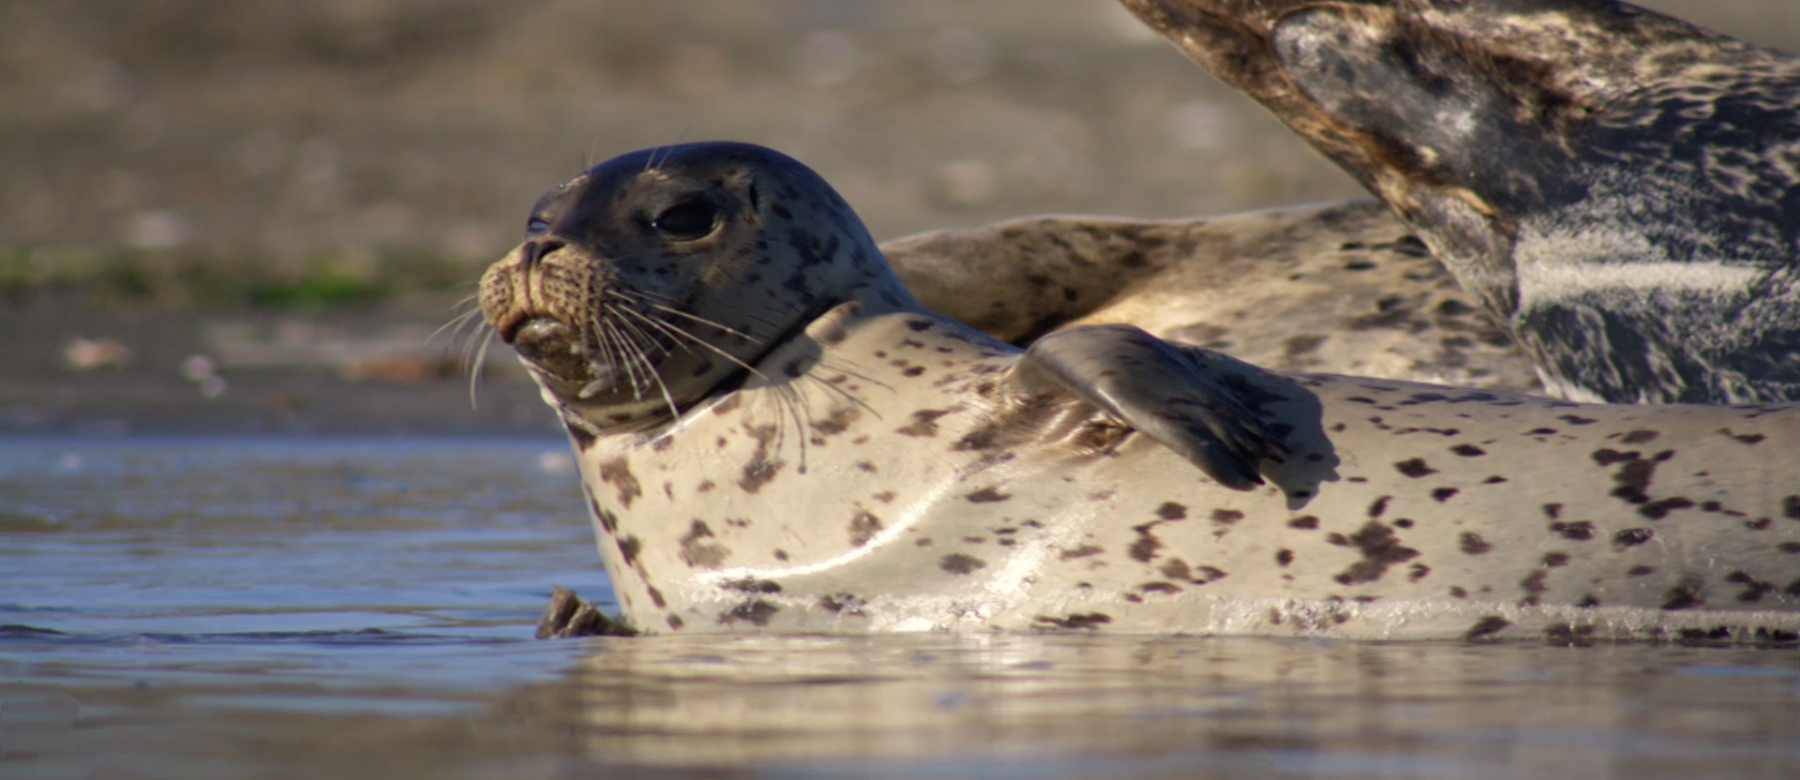 A harbor seal along the shores of the expansion area of Gulf of the Farallones National Marine Sanctuary. (Bob Talbot)